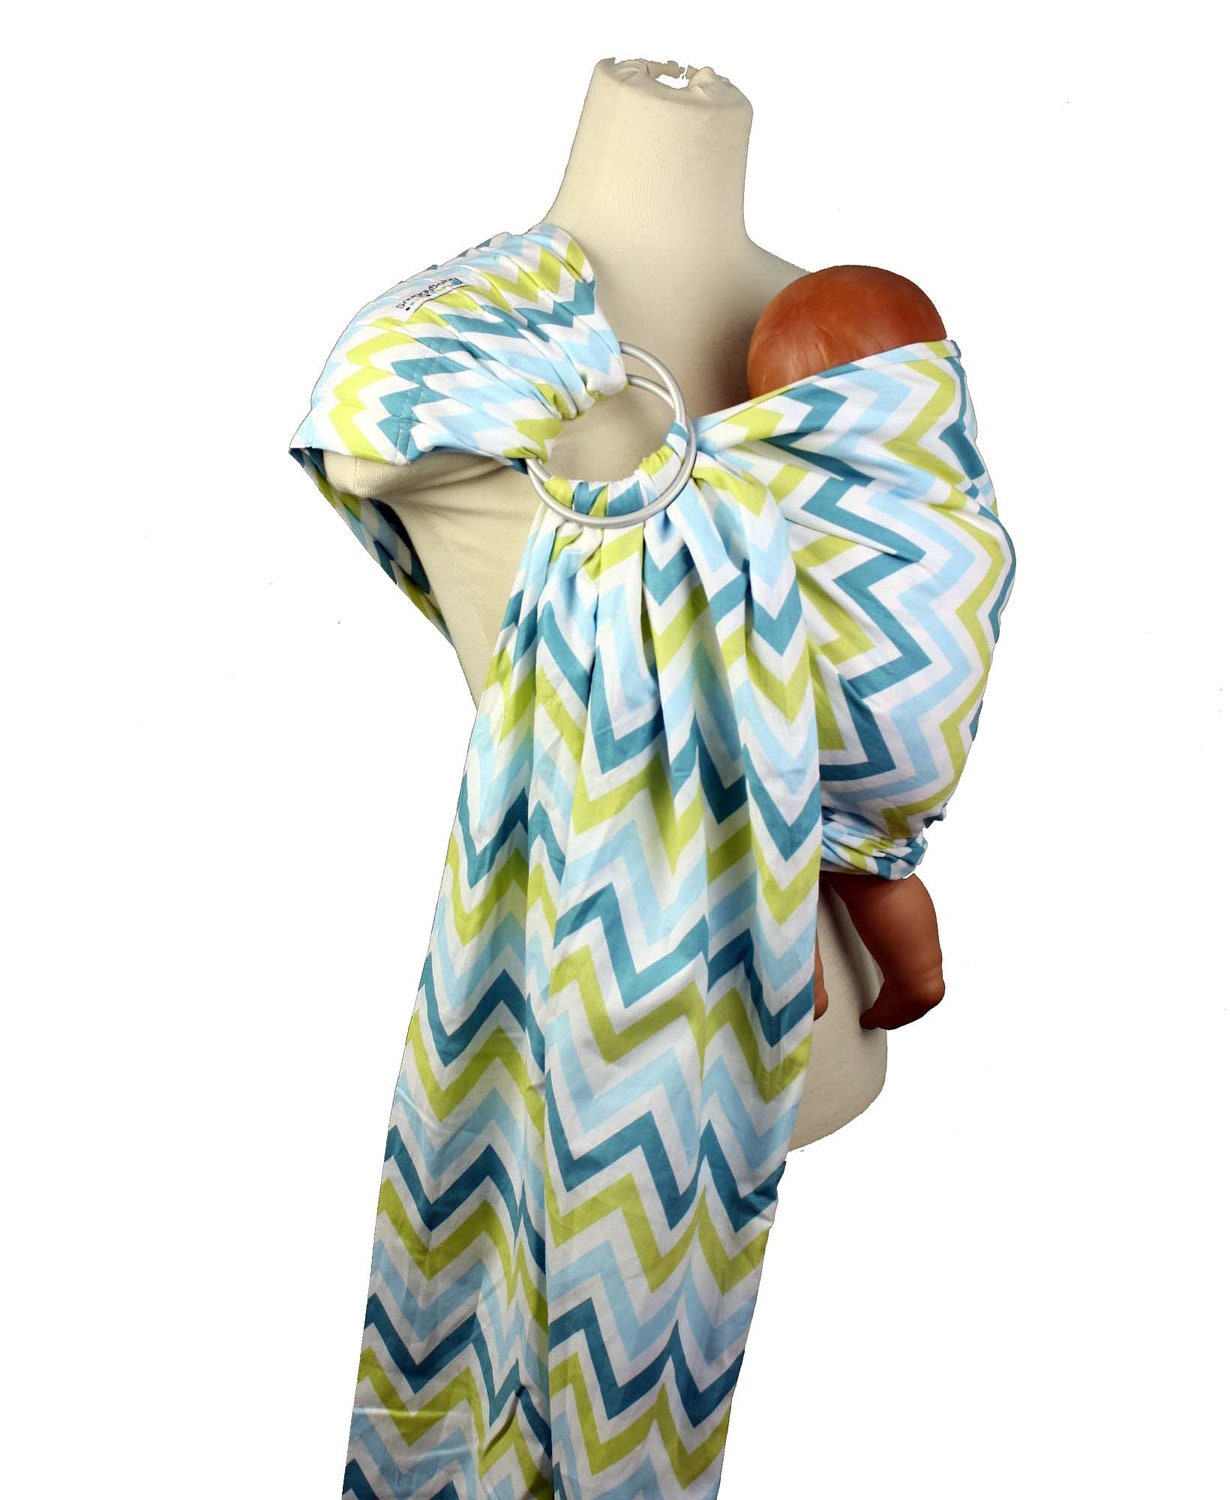 Baby Carrier Ring Sling Baby Sling Blue Chevron